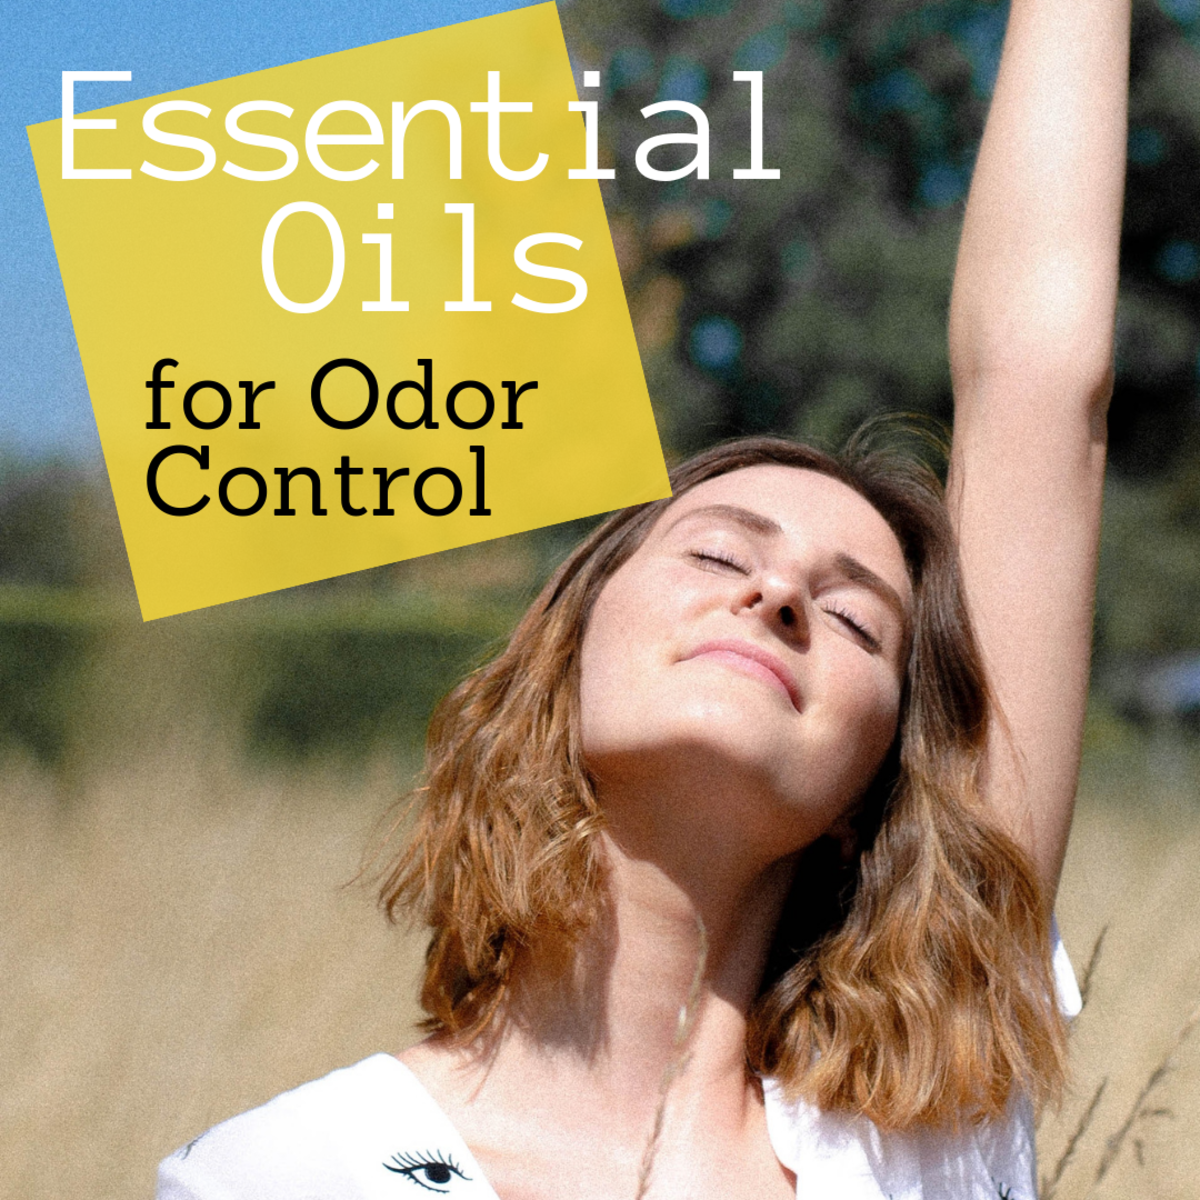 Goodbye Smelly Underarms! The Best Essential Oils for Body Odor